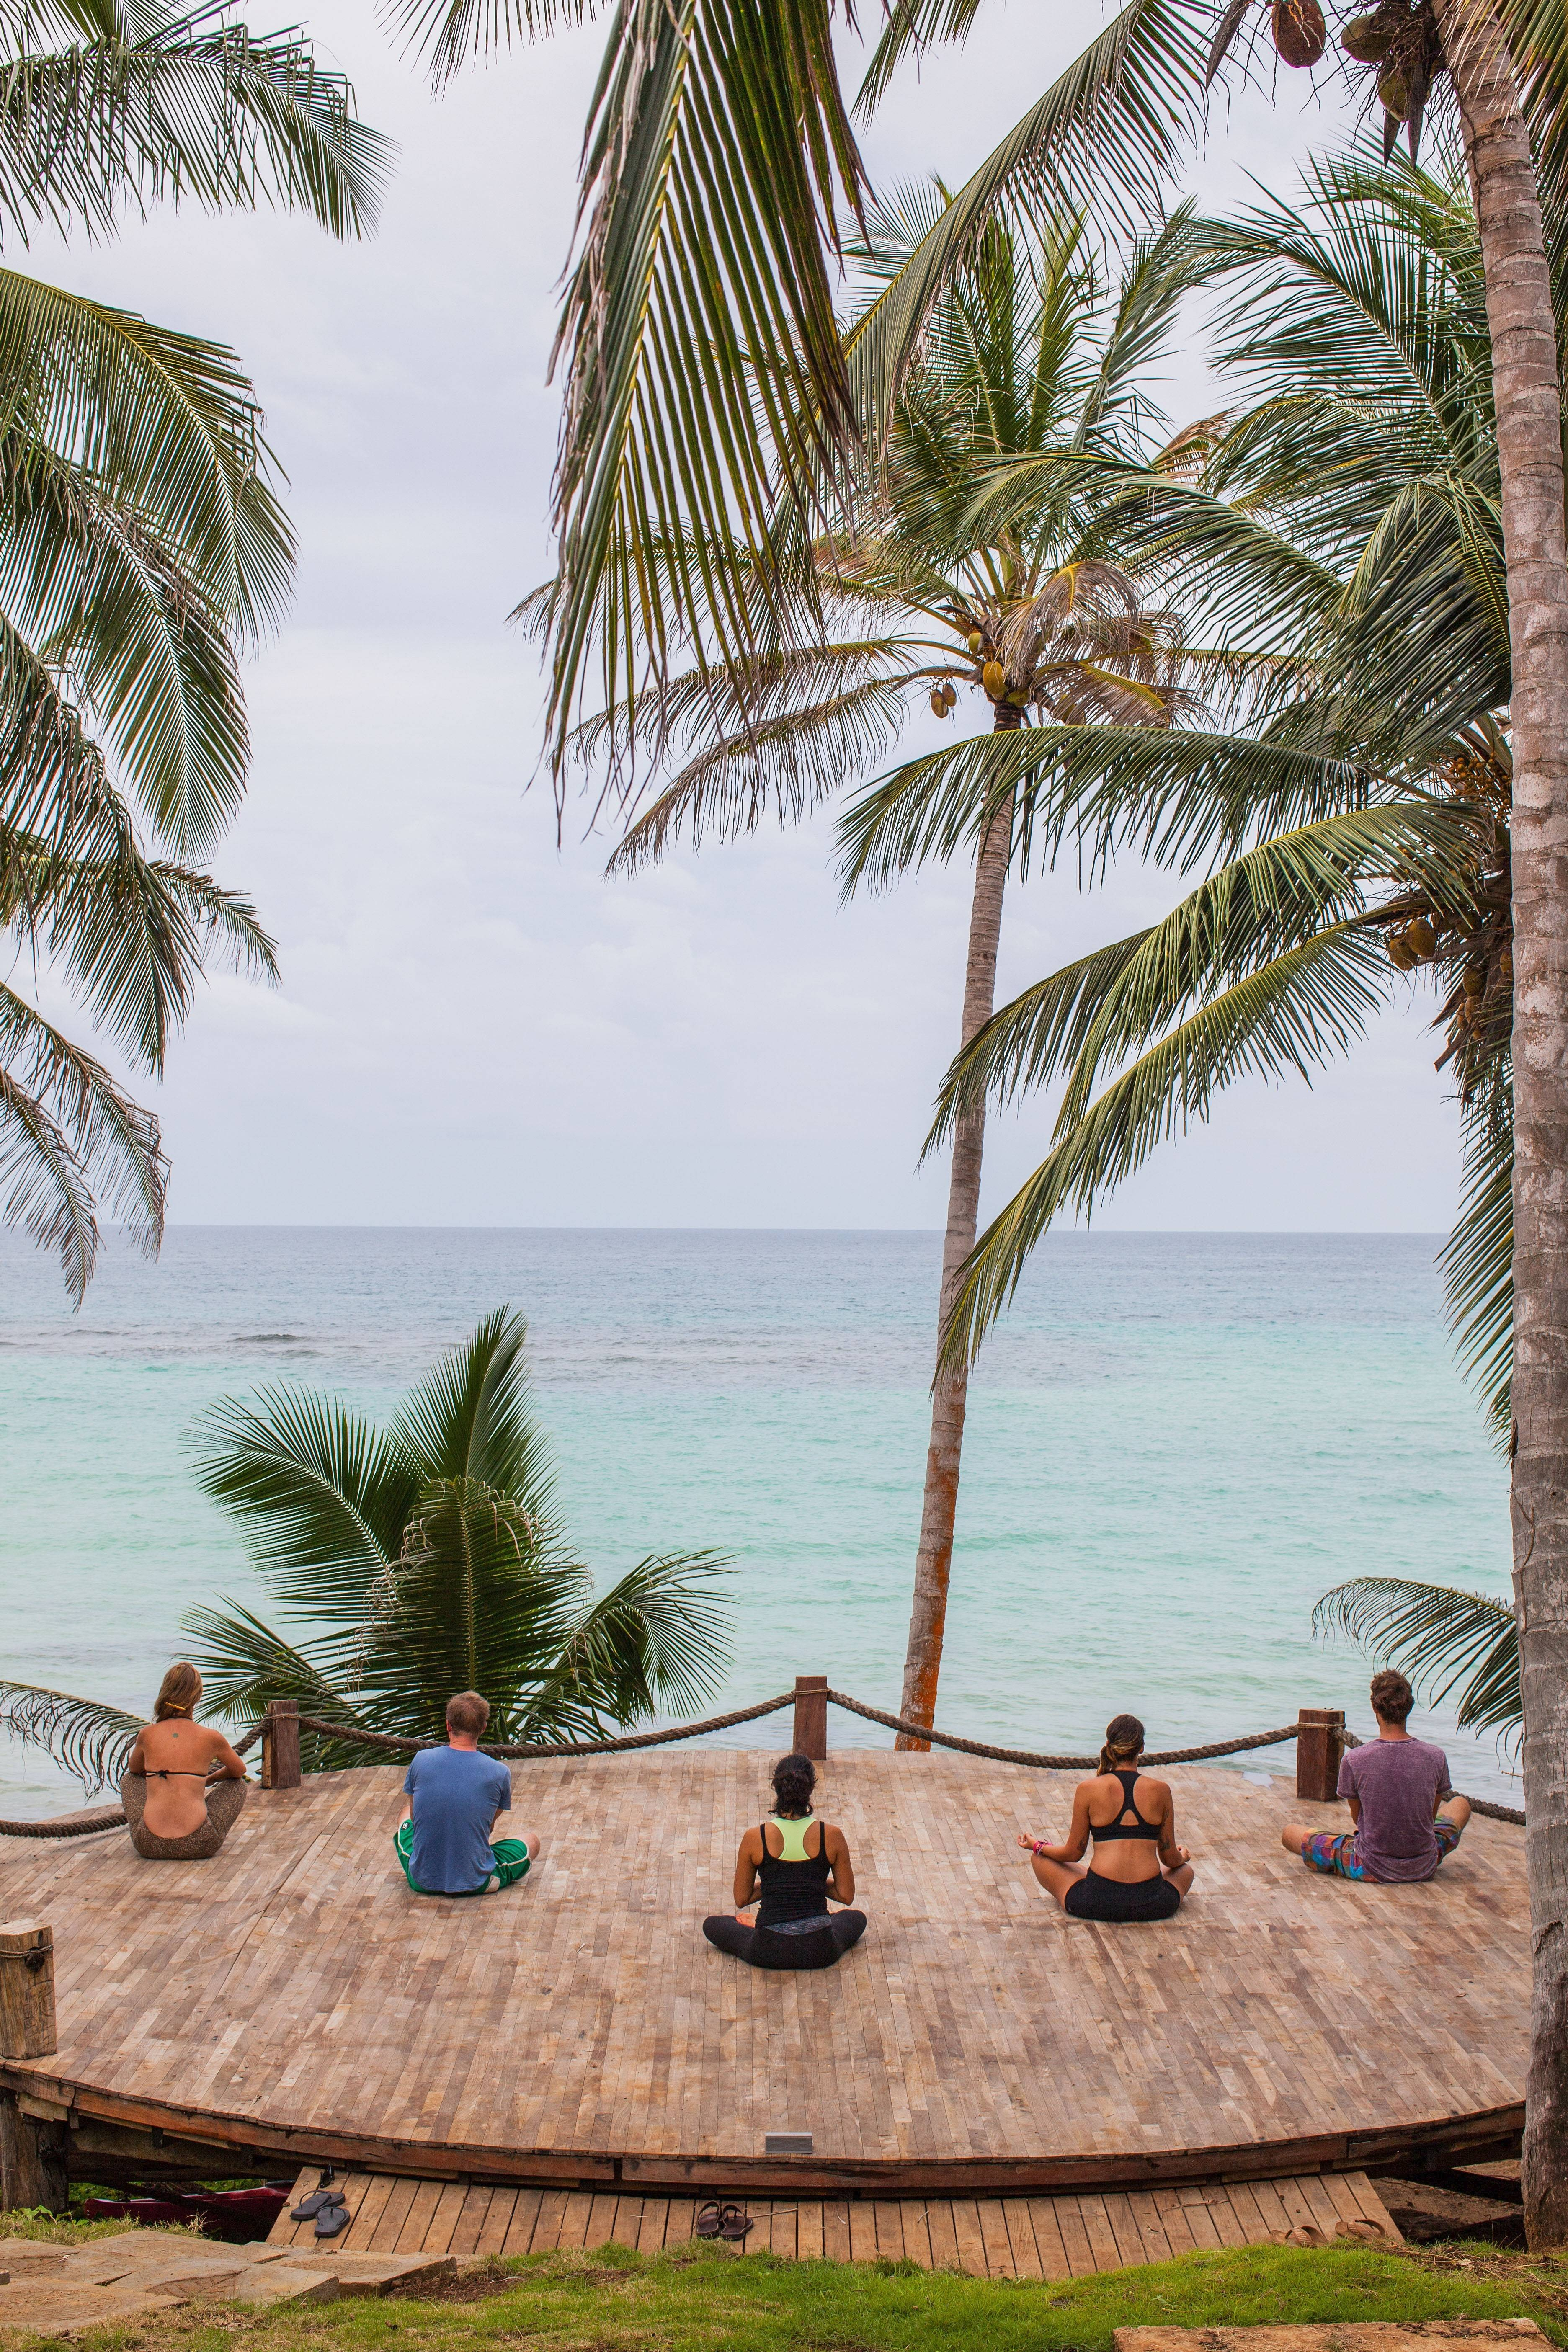 Guests do yoga at Nicaragua's Yemaya Island Hideaway and Spa. Nicaragua is one of the hot travel destinations this year.